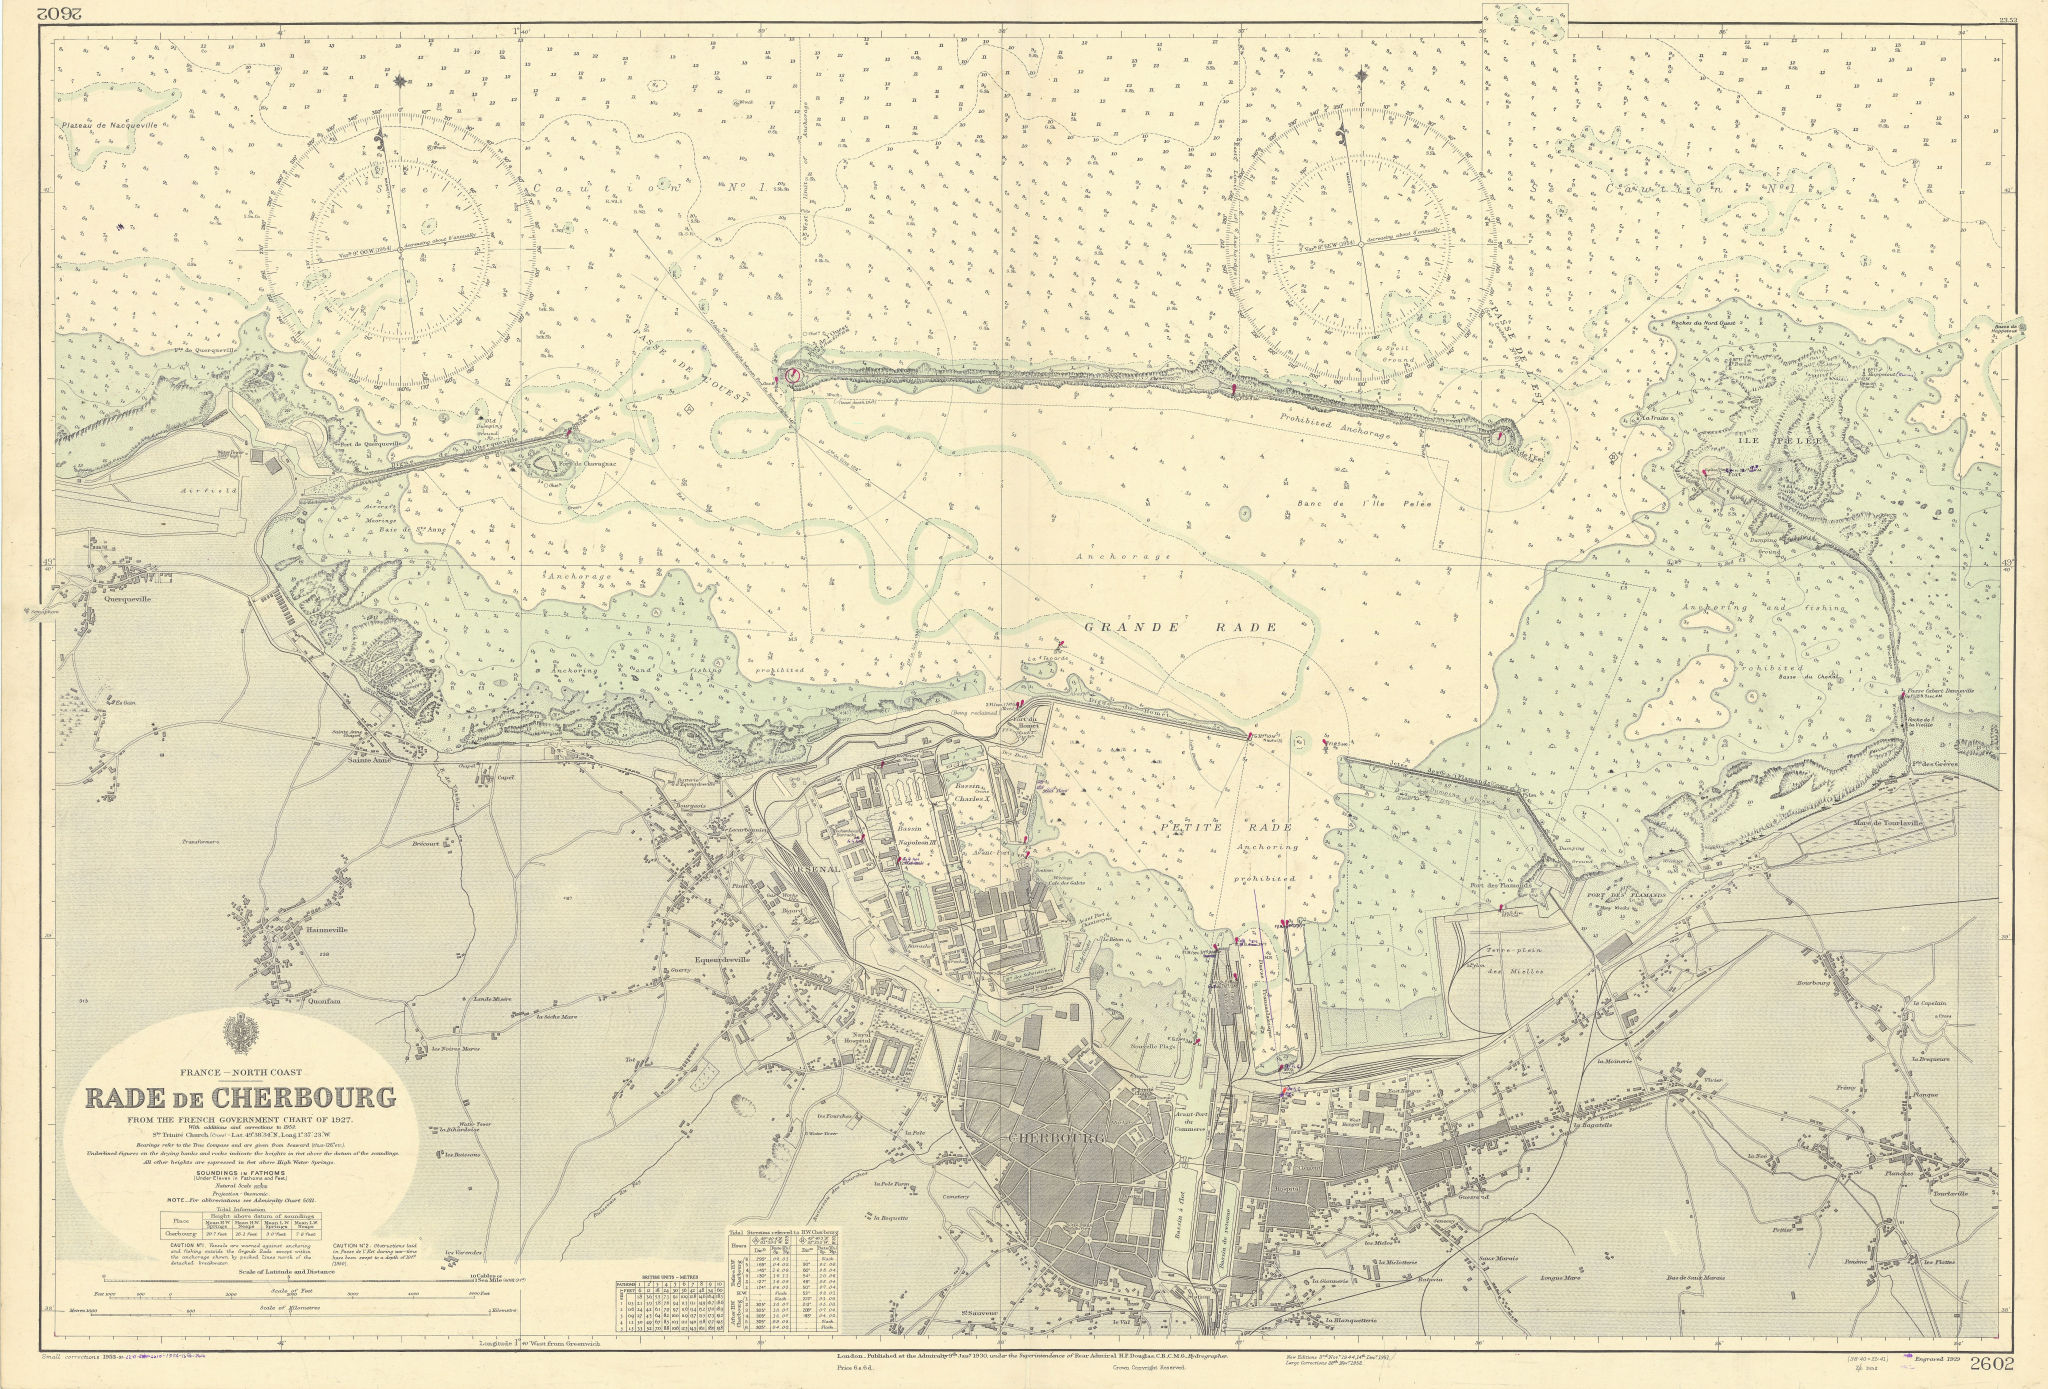 Rade de Cherbourg. Manche France. ADMIRALTY sea chart 1930 (1954) old map